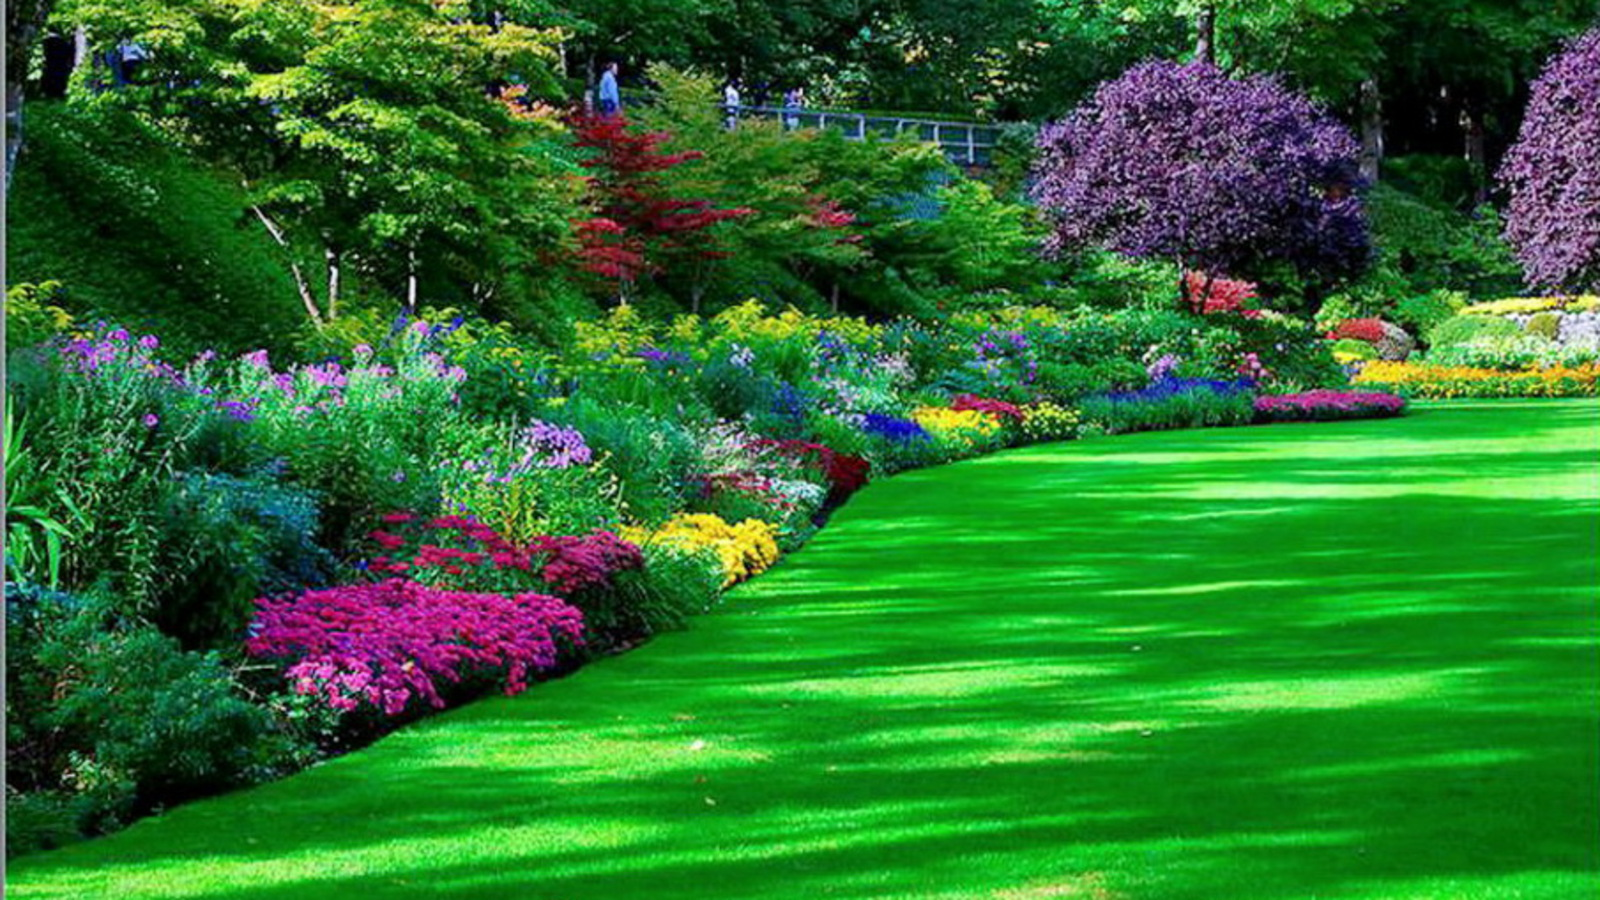 A Beautiful Park Wallpaper And Background Image 1600x900